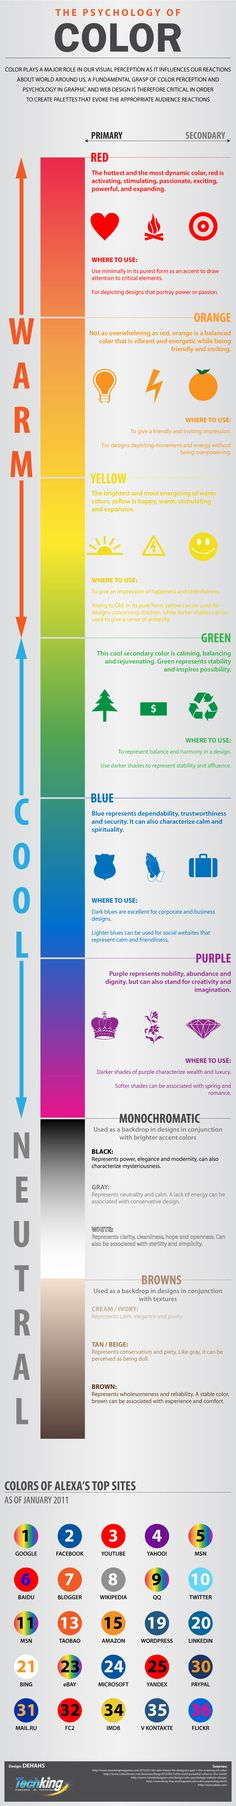 The psychology of color #infographic